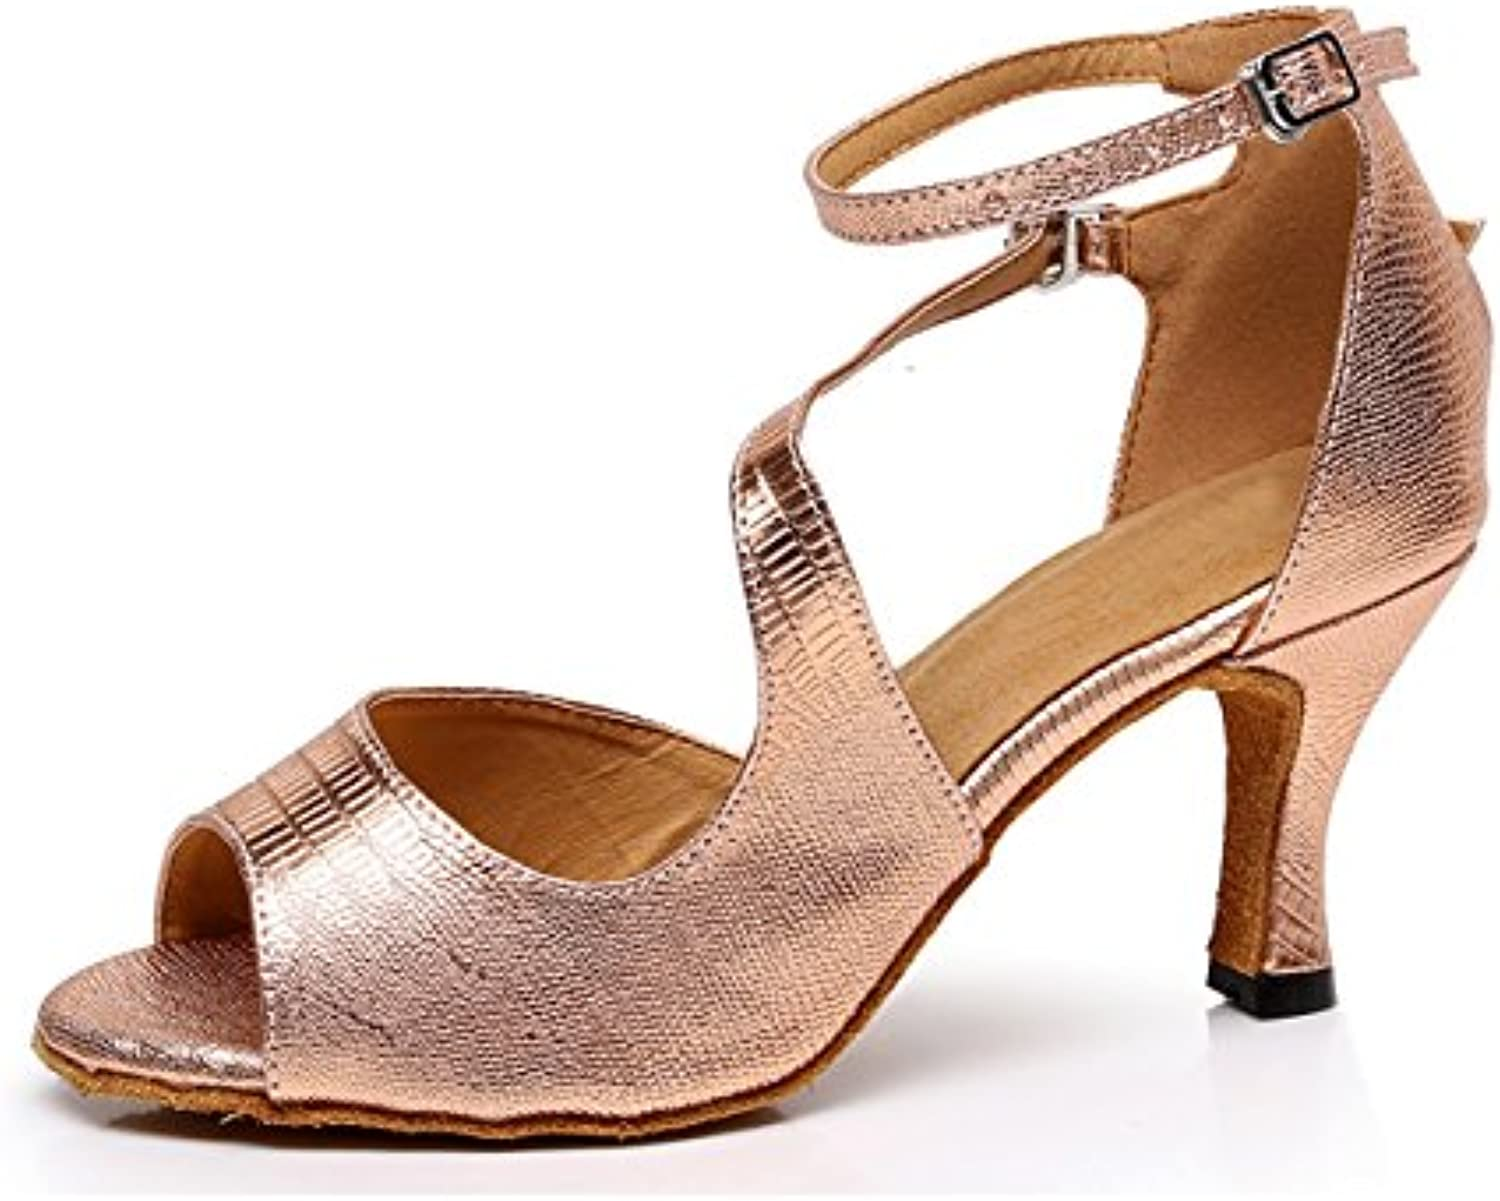 a180655a41e MINITOO TQJ5009 Ladies Stylish Rose Gold Synthetic Synthetic Synthetic Tango  Latin Ballroom Dance Shoes Evening Wedding Sandals 8 UK Parent B01M32GS7B  ...